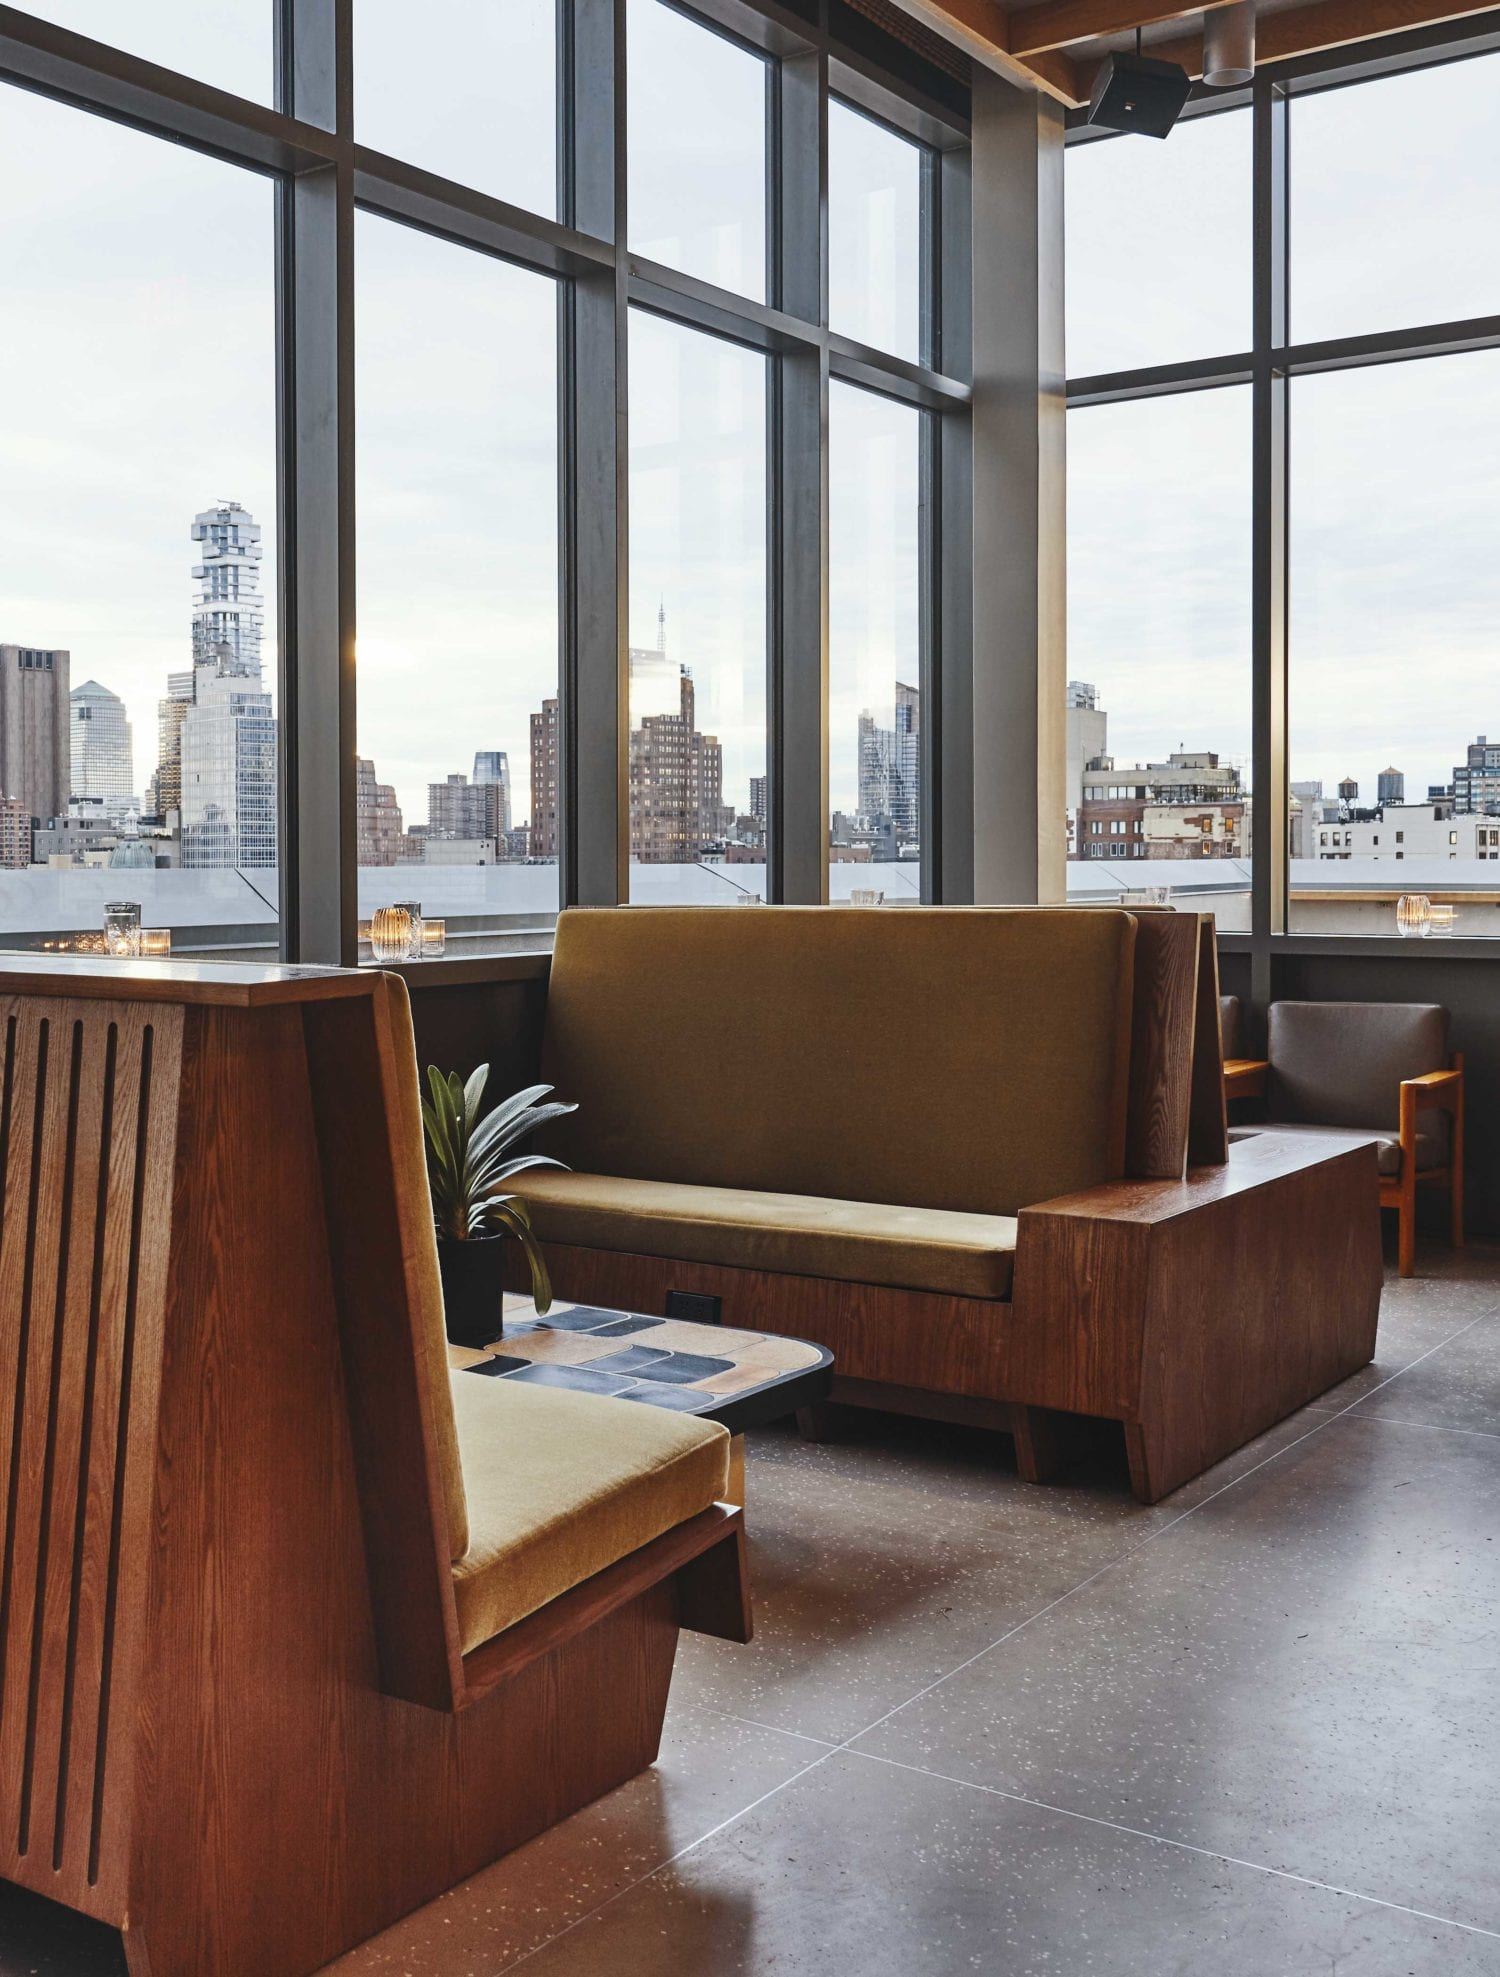 Sister City Hotel Opens In New York City Yellowtrace